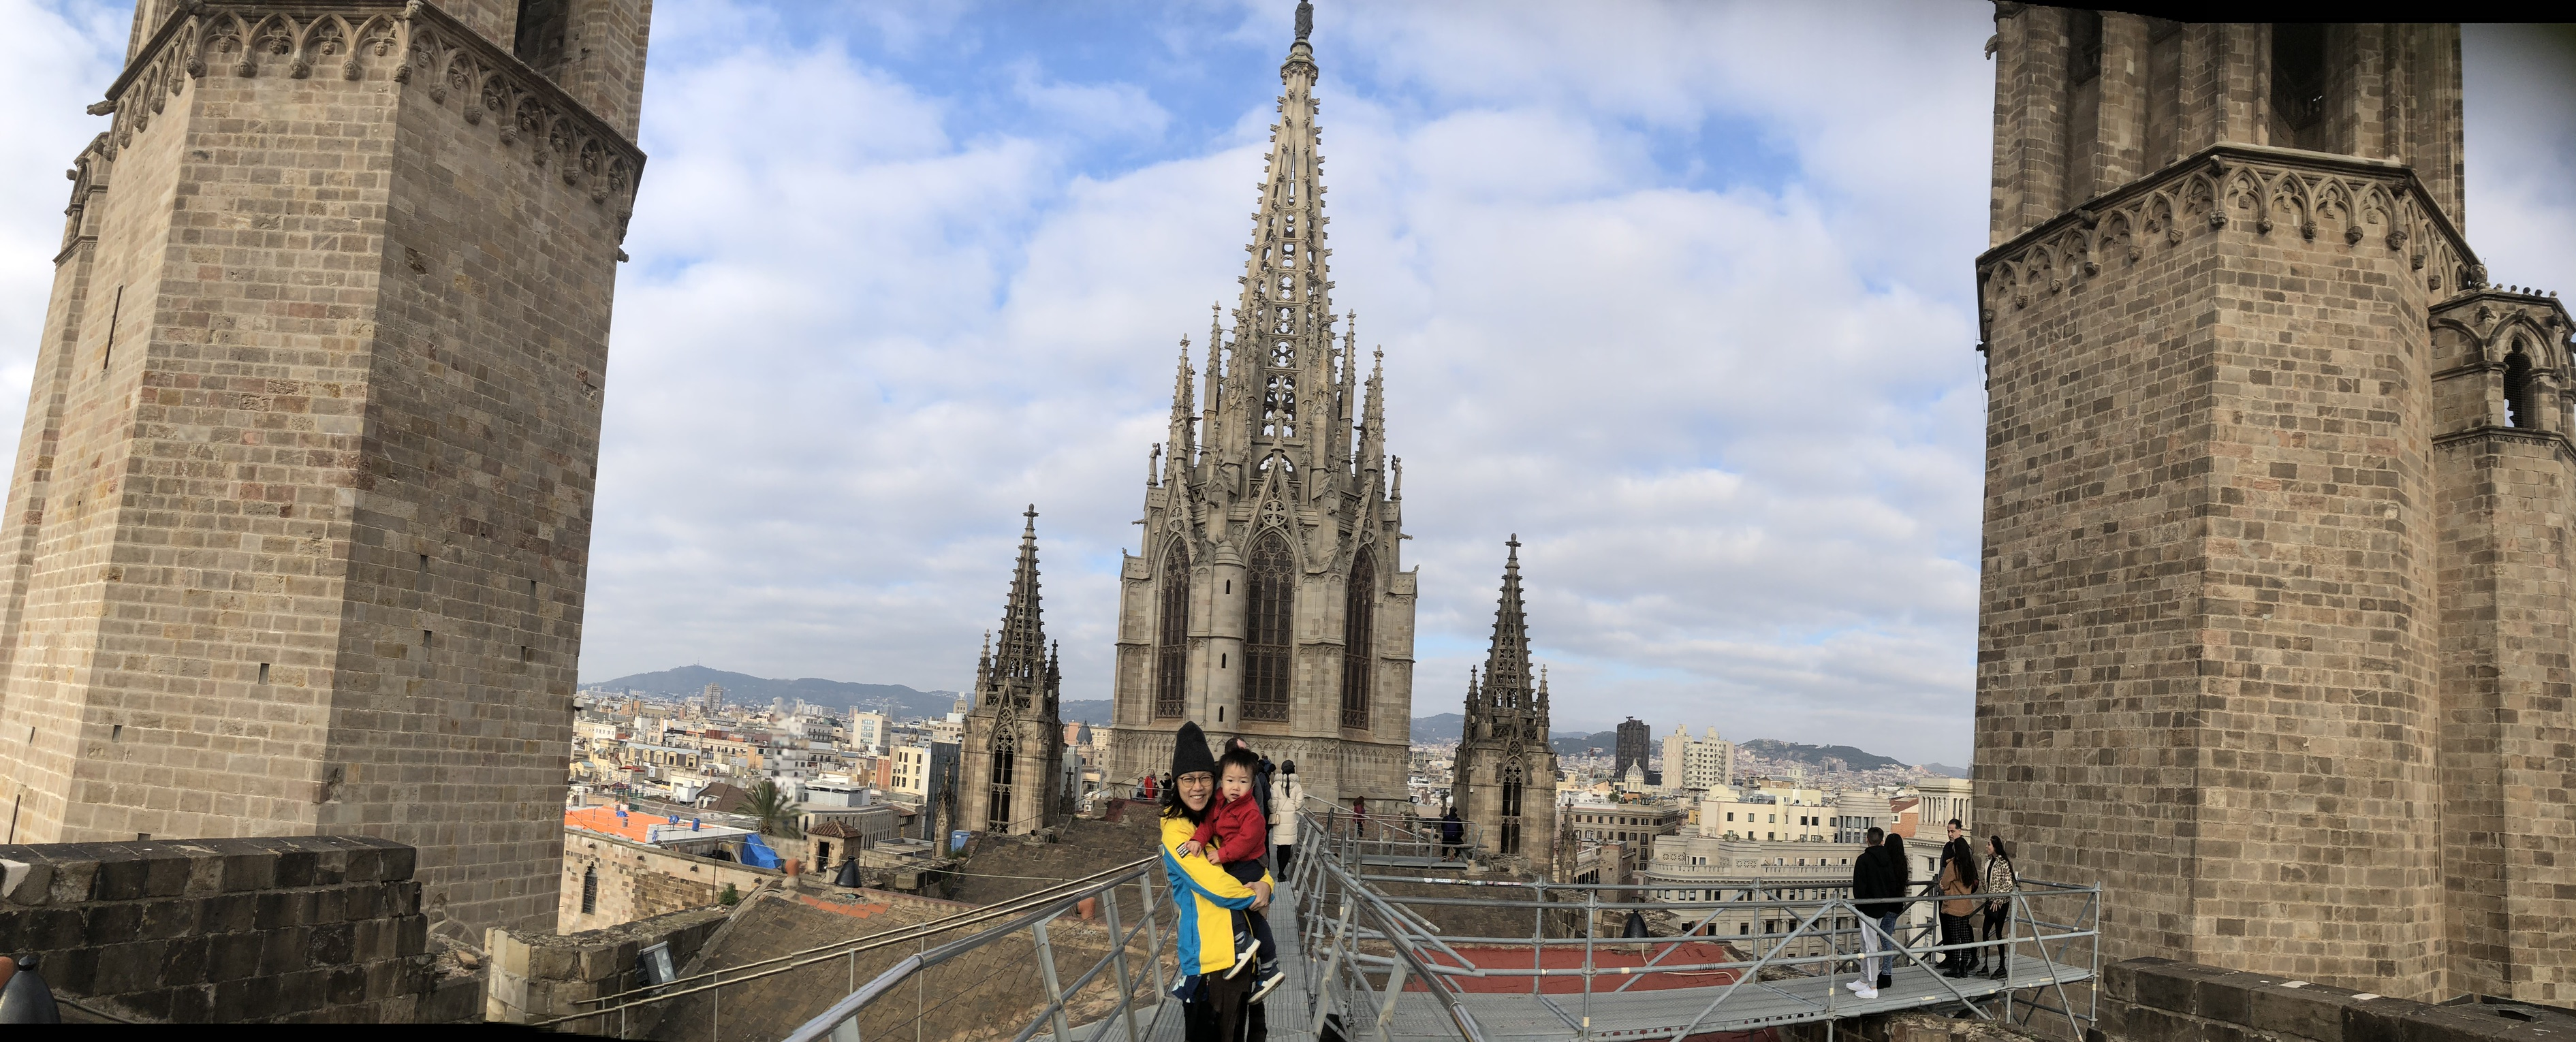 Roof top of Barcelona cathedral